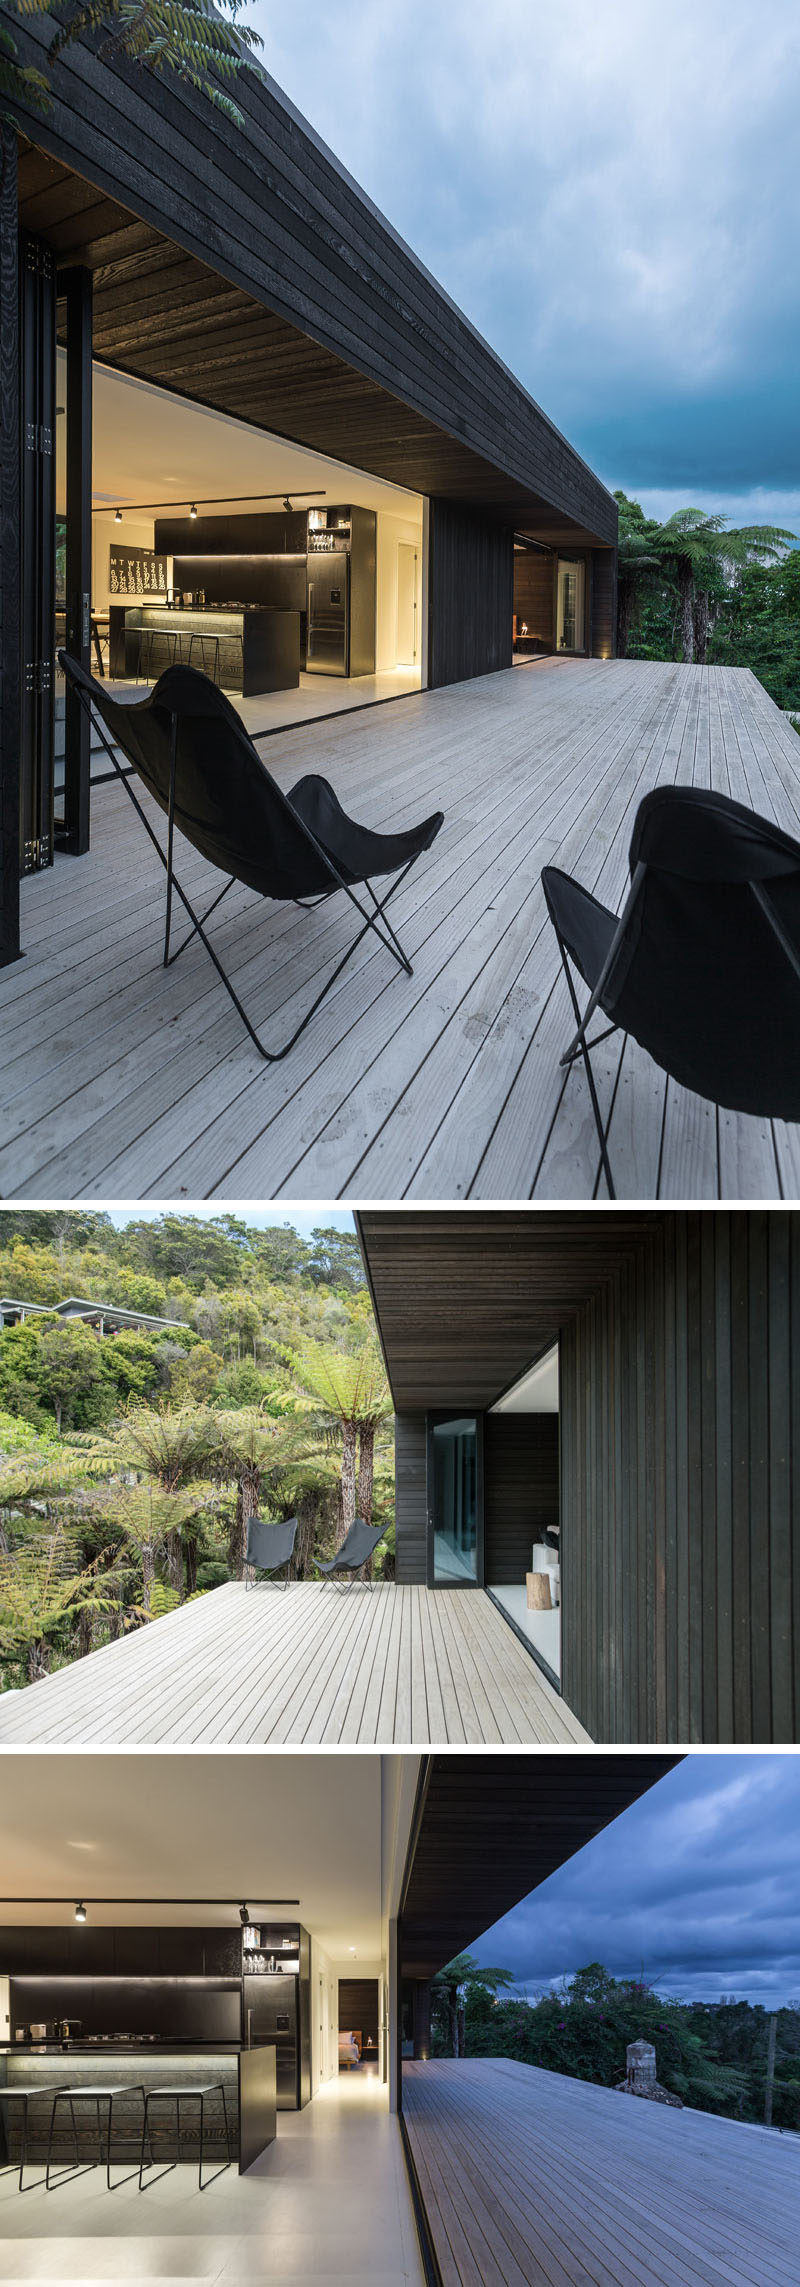 At the top of the stairs, the light wood steps expand out into a deck for this modern house, and glass bi-fold doors make the home perfect for indoor/outdoor living.